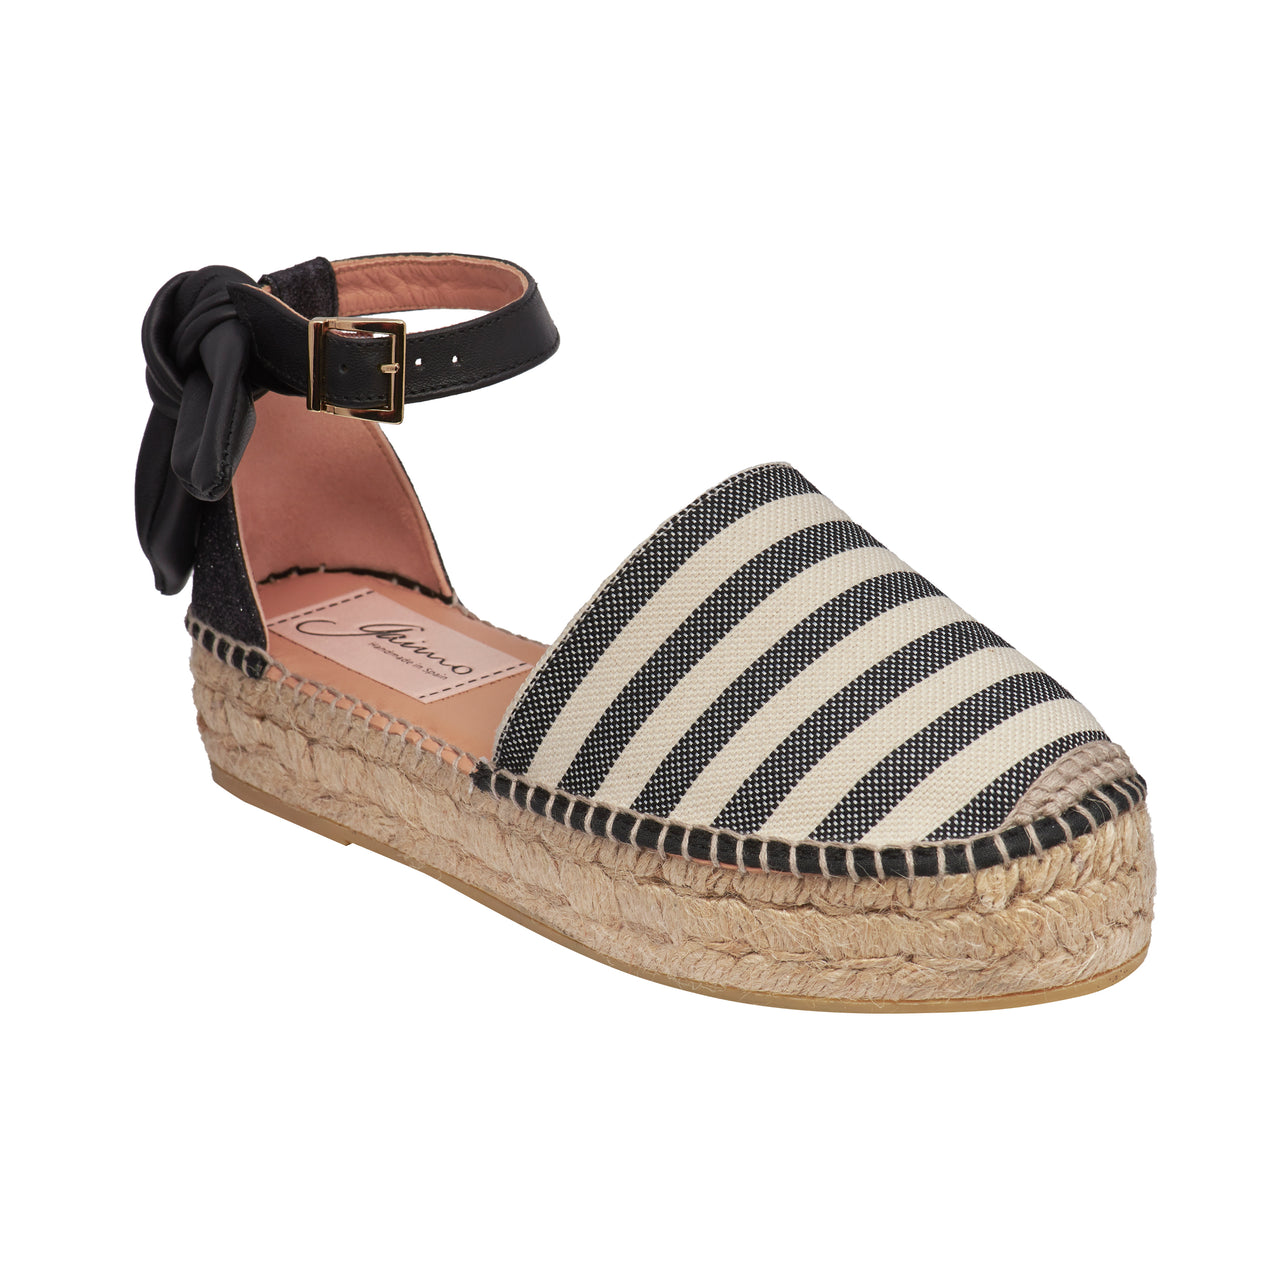 DIVO Black espadrilles - Badt and Co - singapore